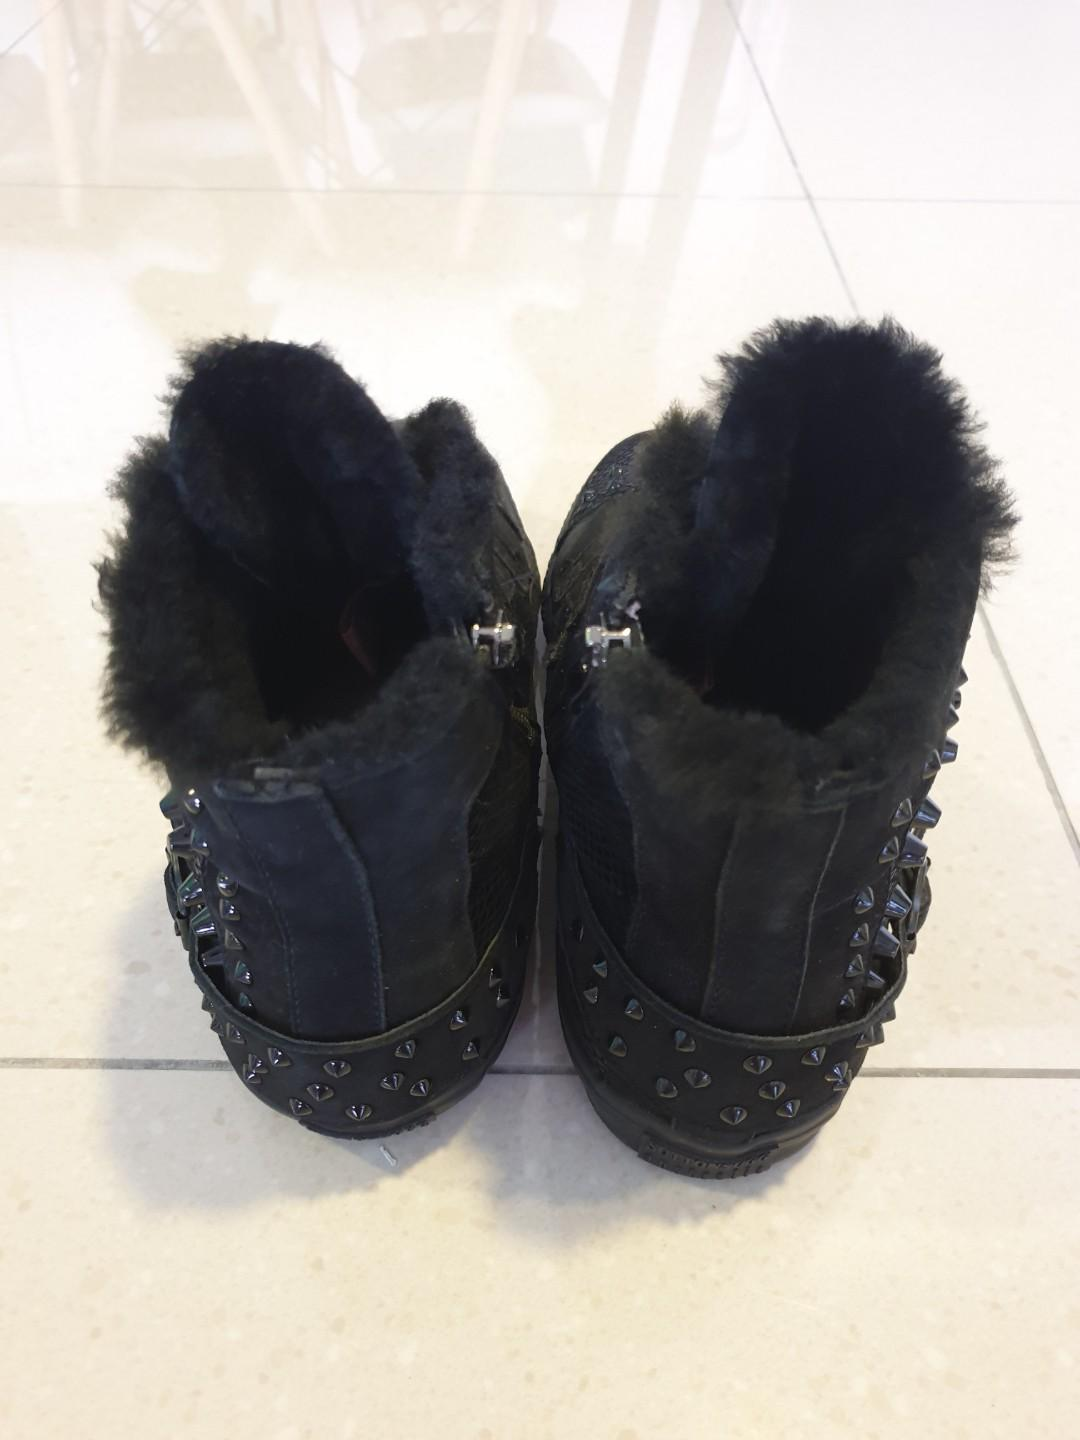 acdbadcbe17 Suttons UGG Australia, Men's Fashion, Men's Footwear, Boots on Carousell